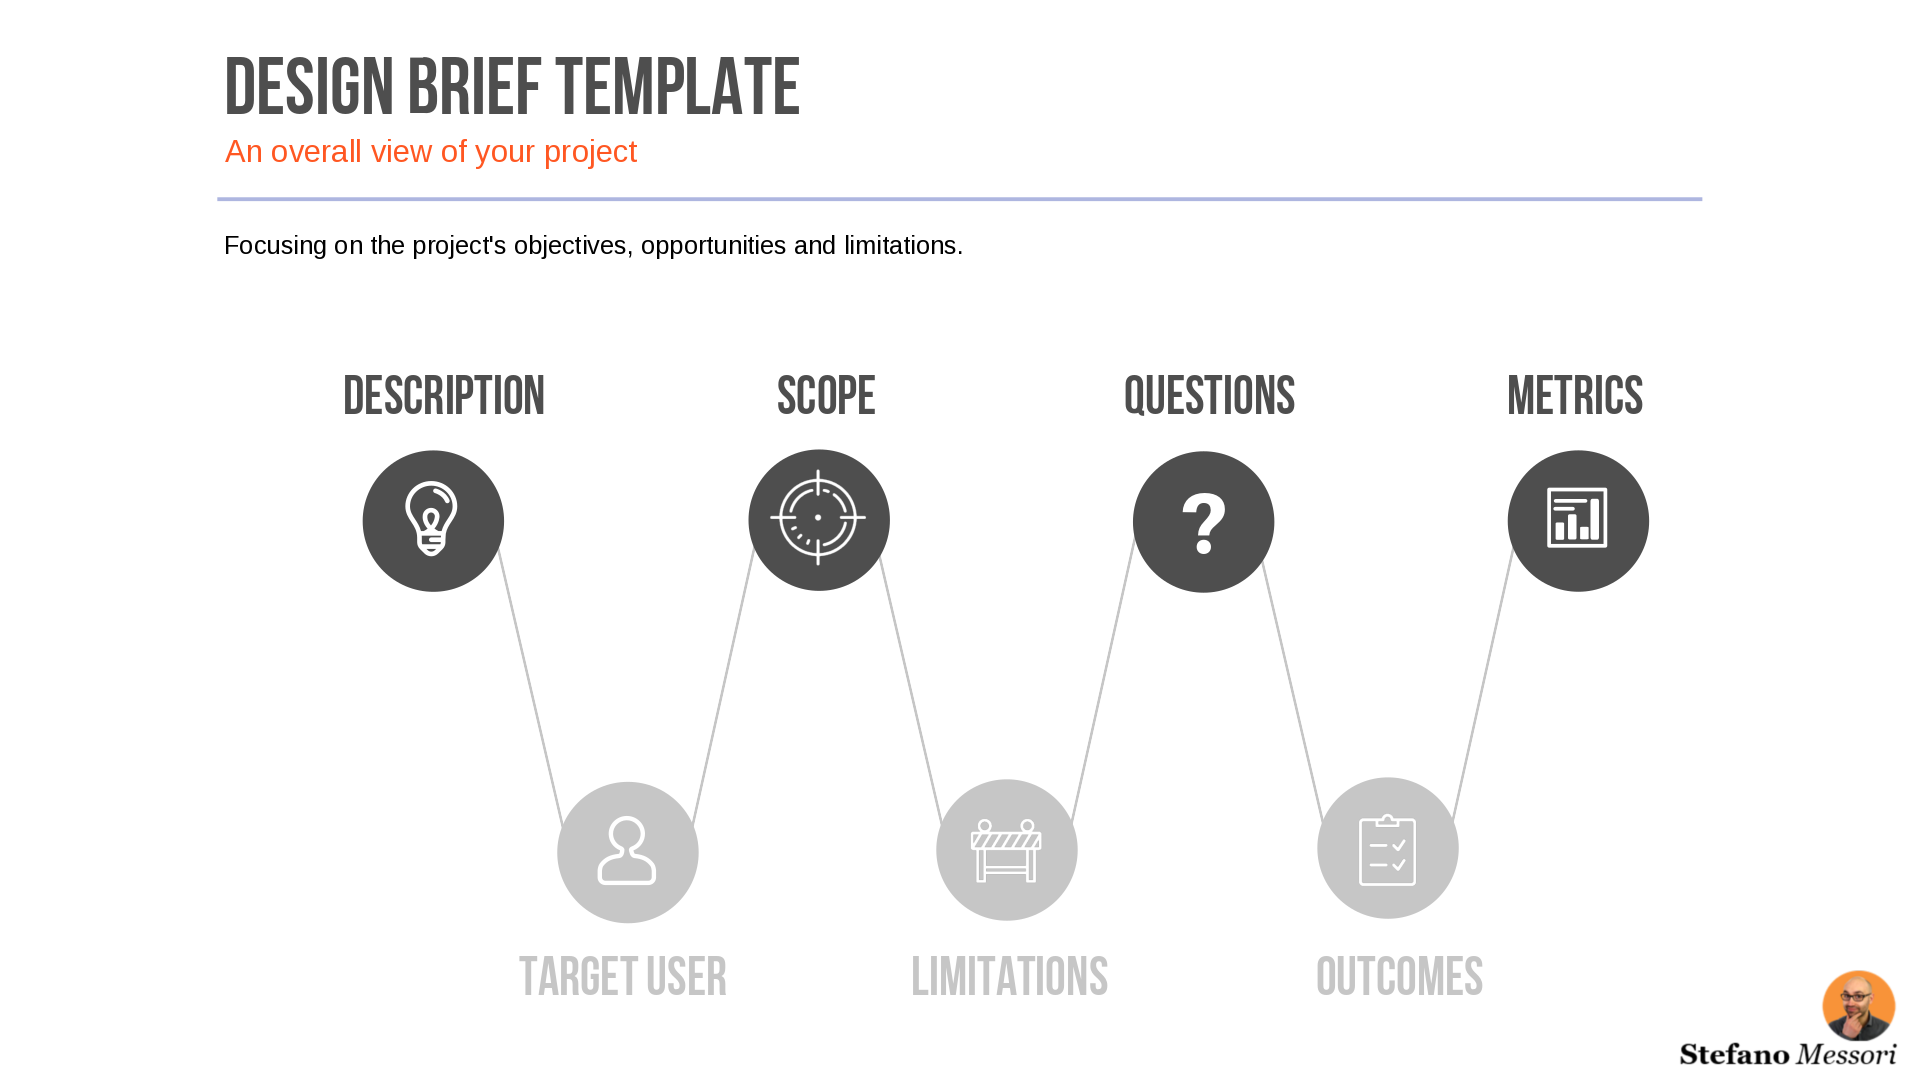 Design Brief Template